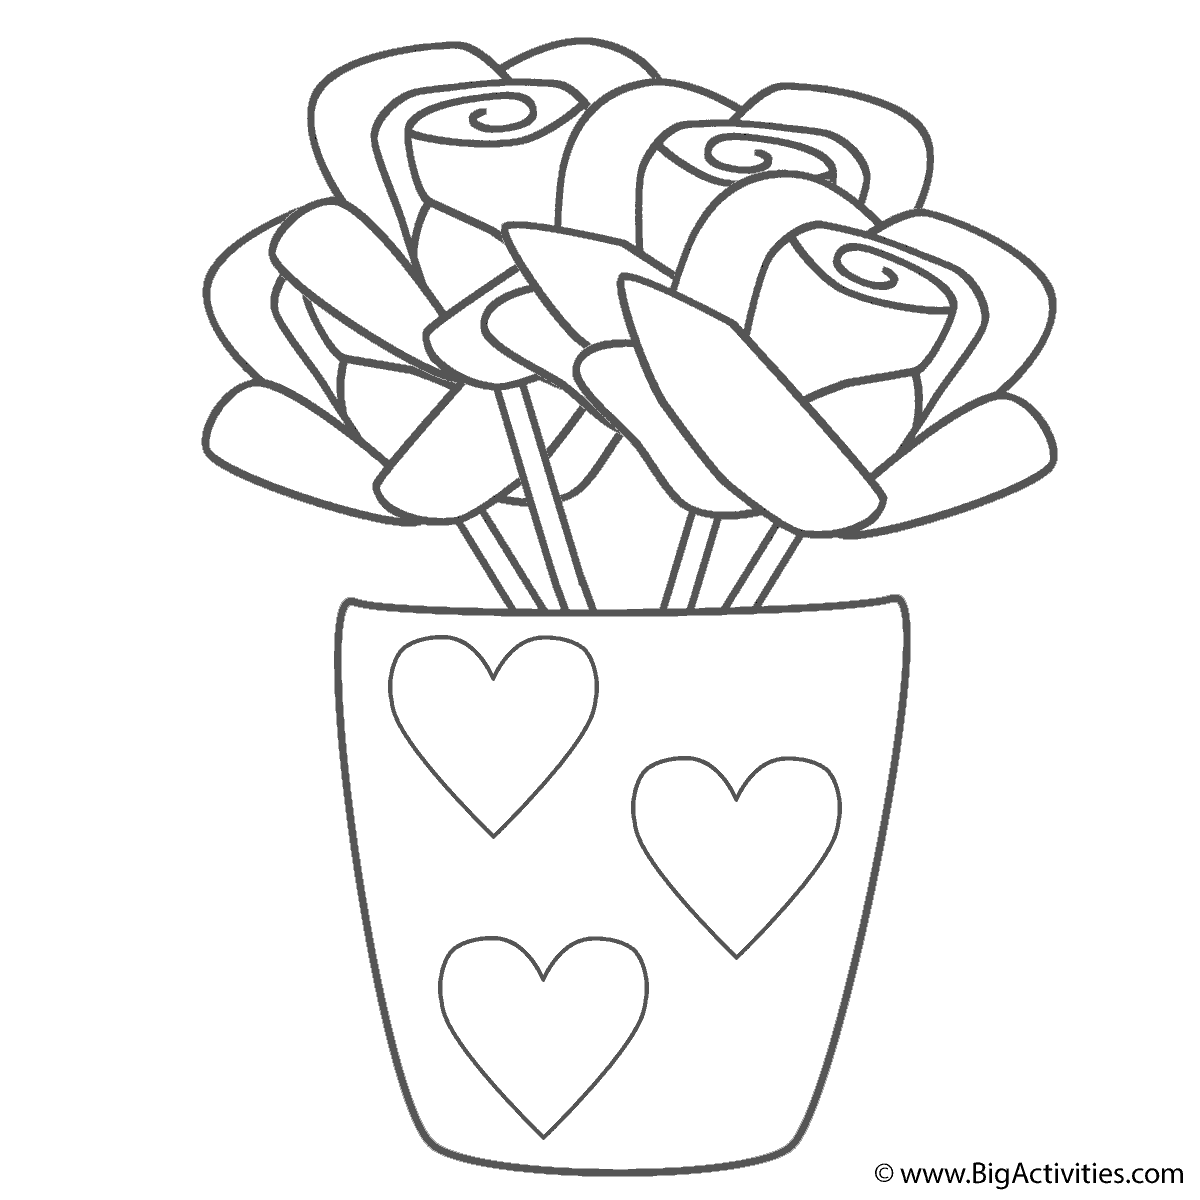 - Roses In Vase With Hearts - Coloring Page (Mother's Day)